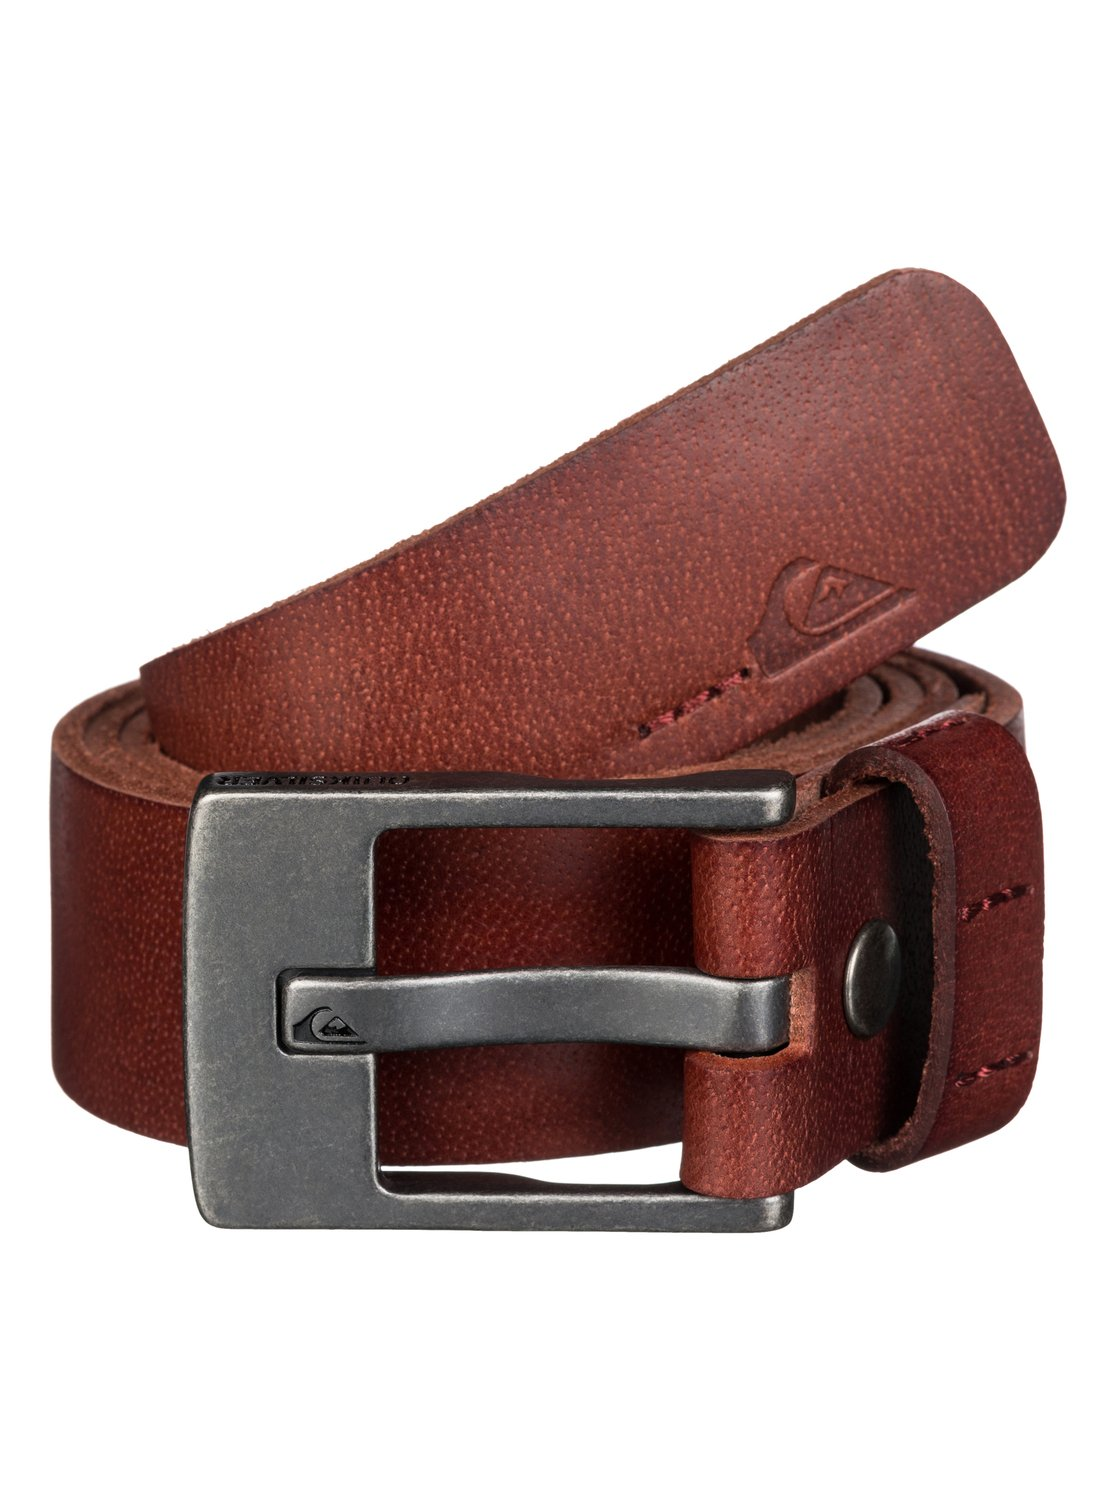 Shop our range of Men's Belts on sale. Shop our range of Leather Belts, Waist Belts & More on sale online at David Jones. Free & fast delivery available.